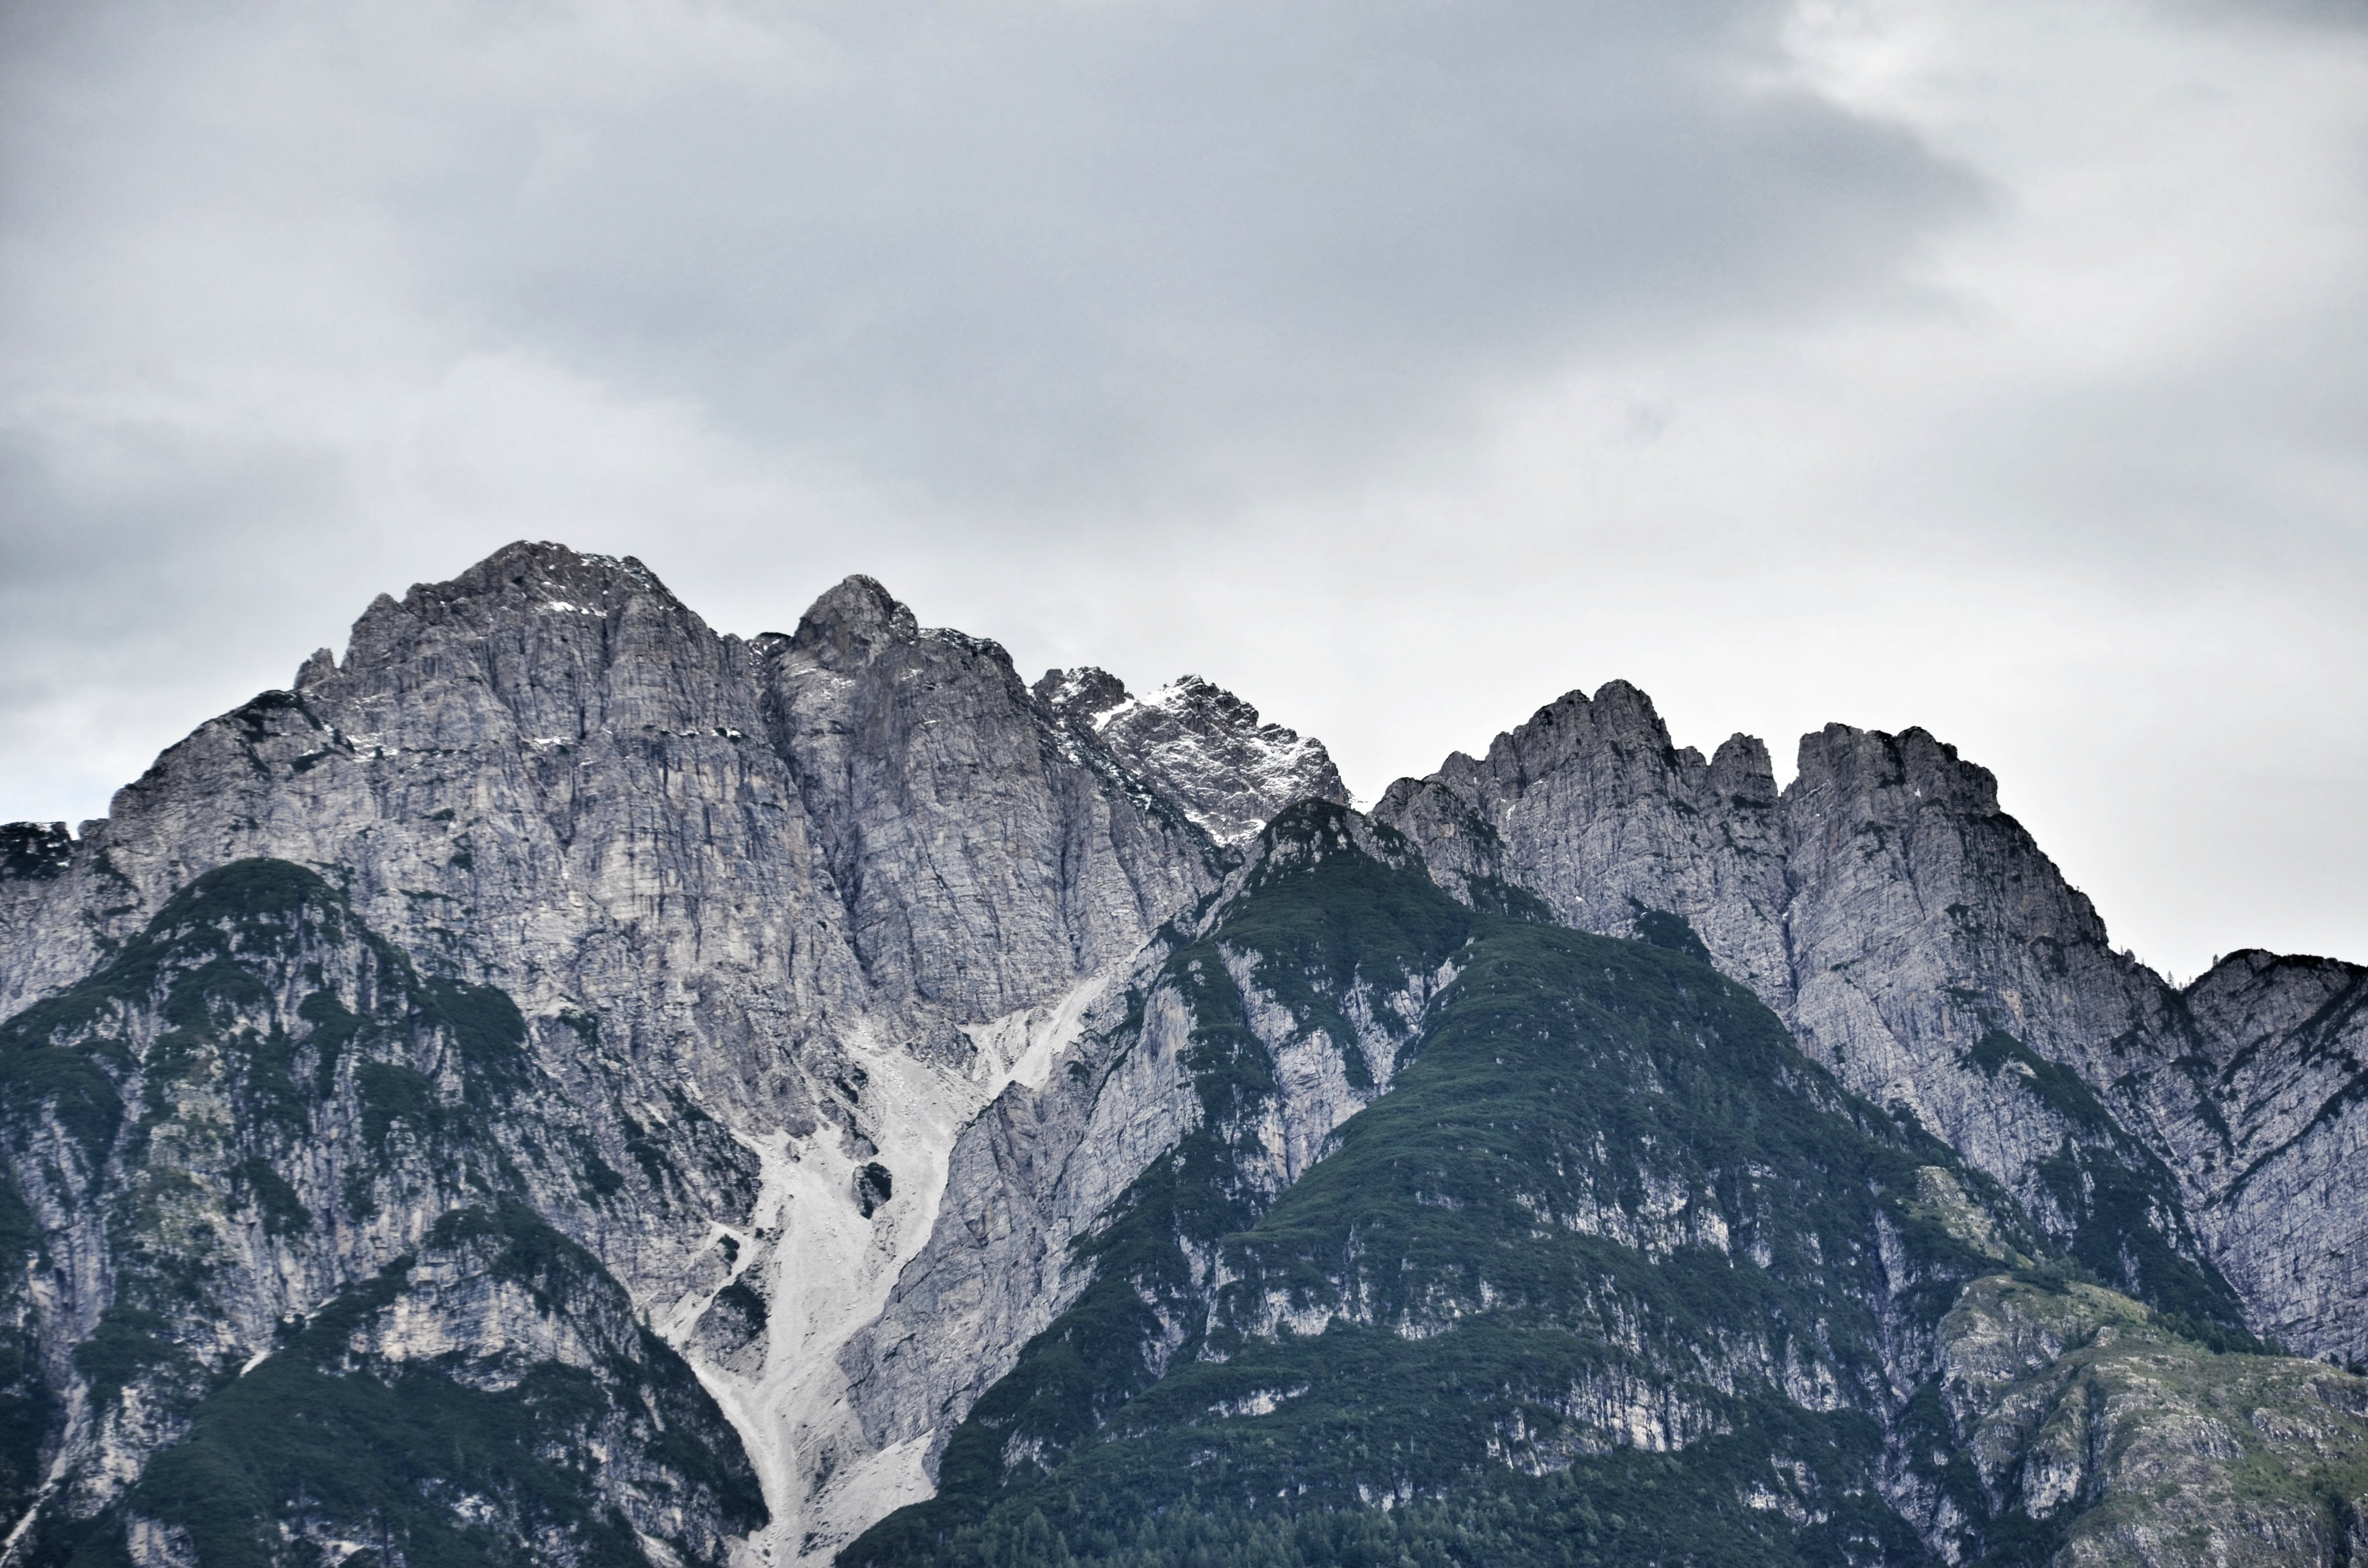 Landscape Photography of Mountain Under Gray Sky